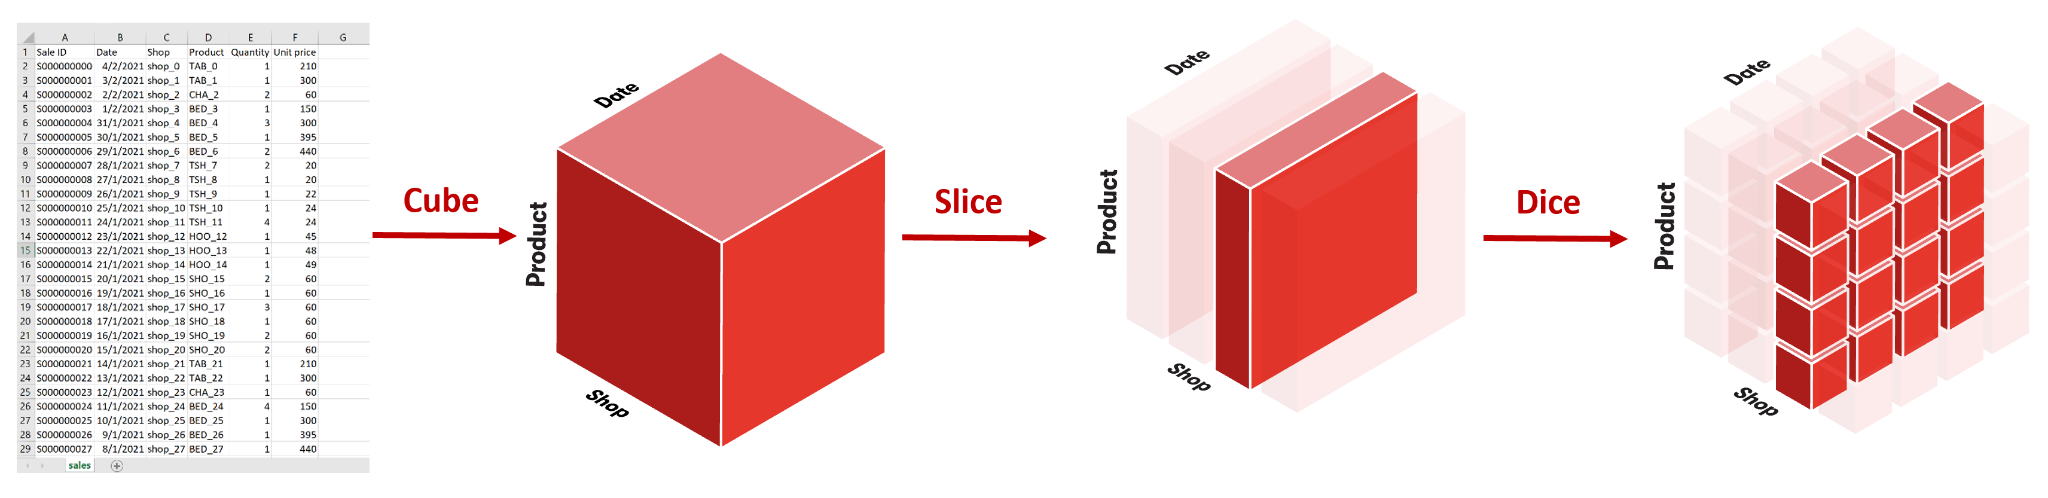 Visual representation of slice and dice operations on a cube.